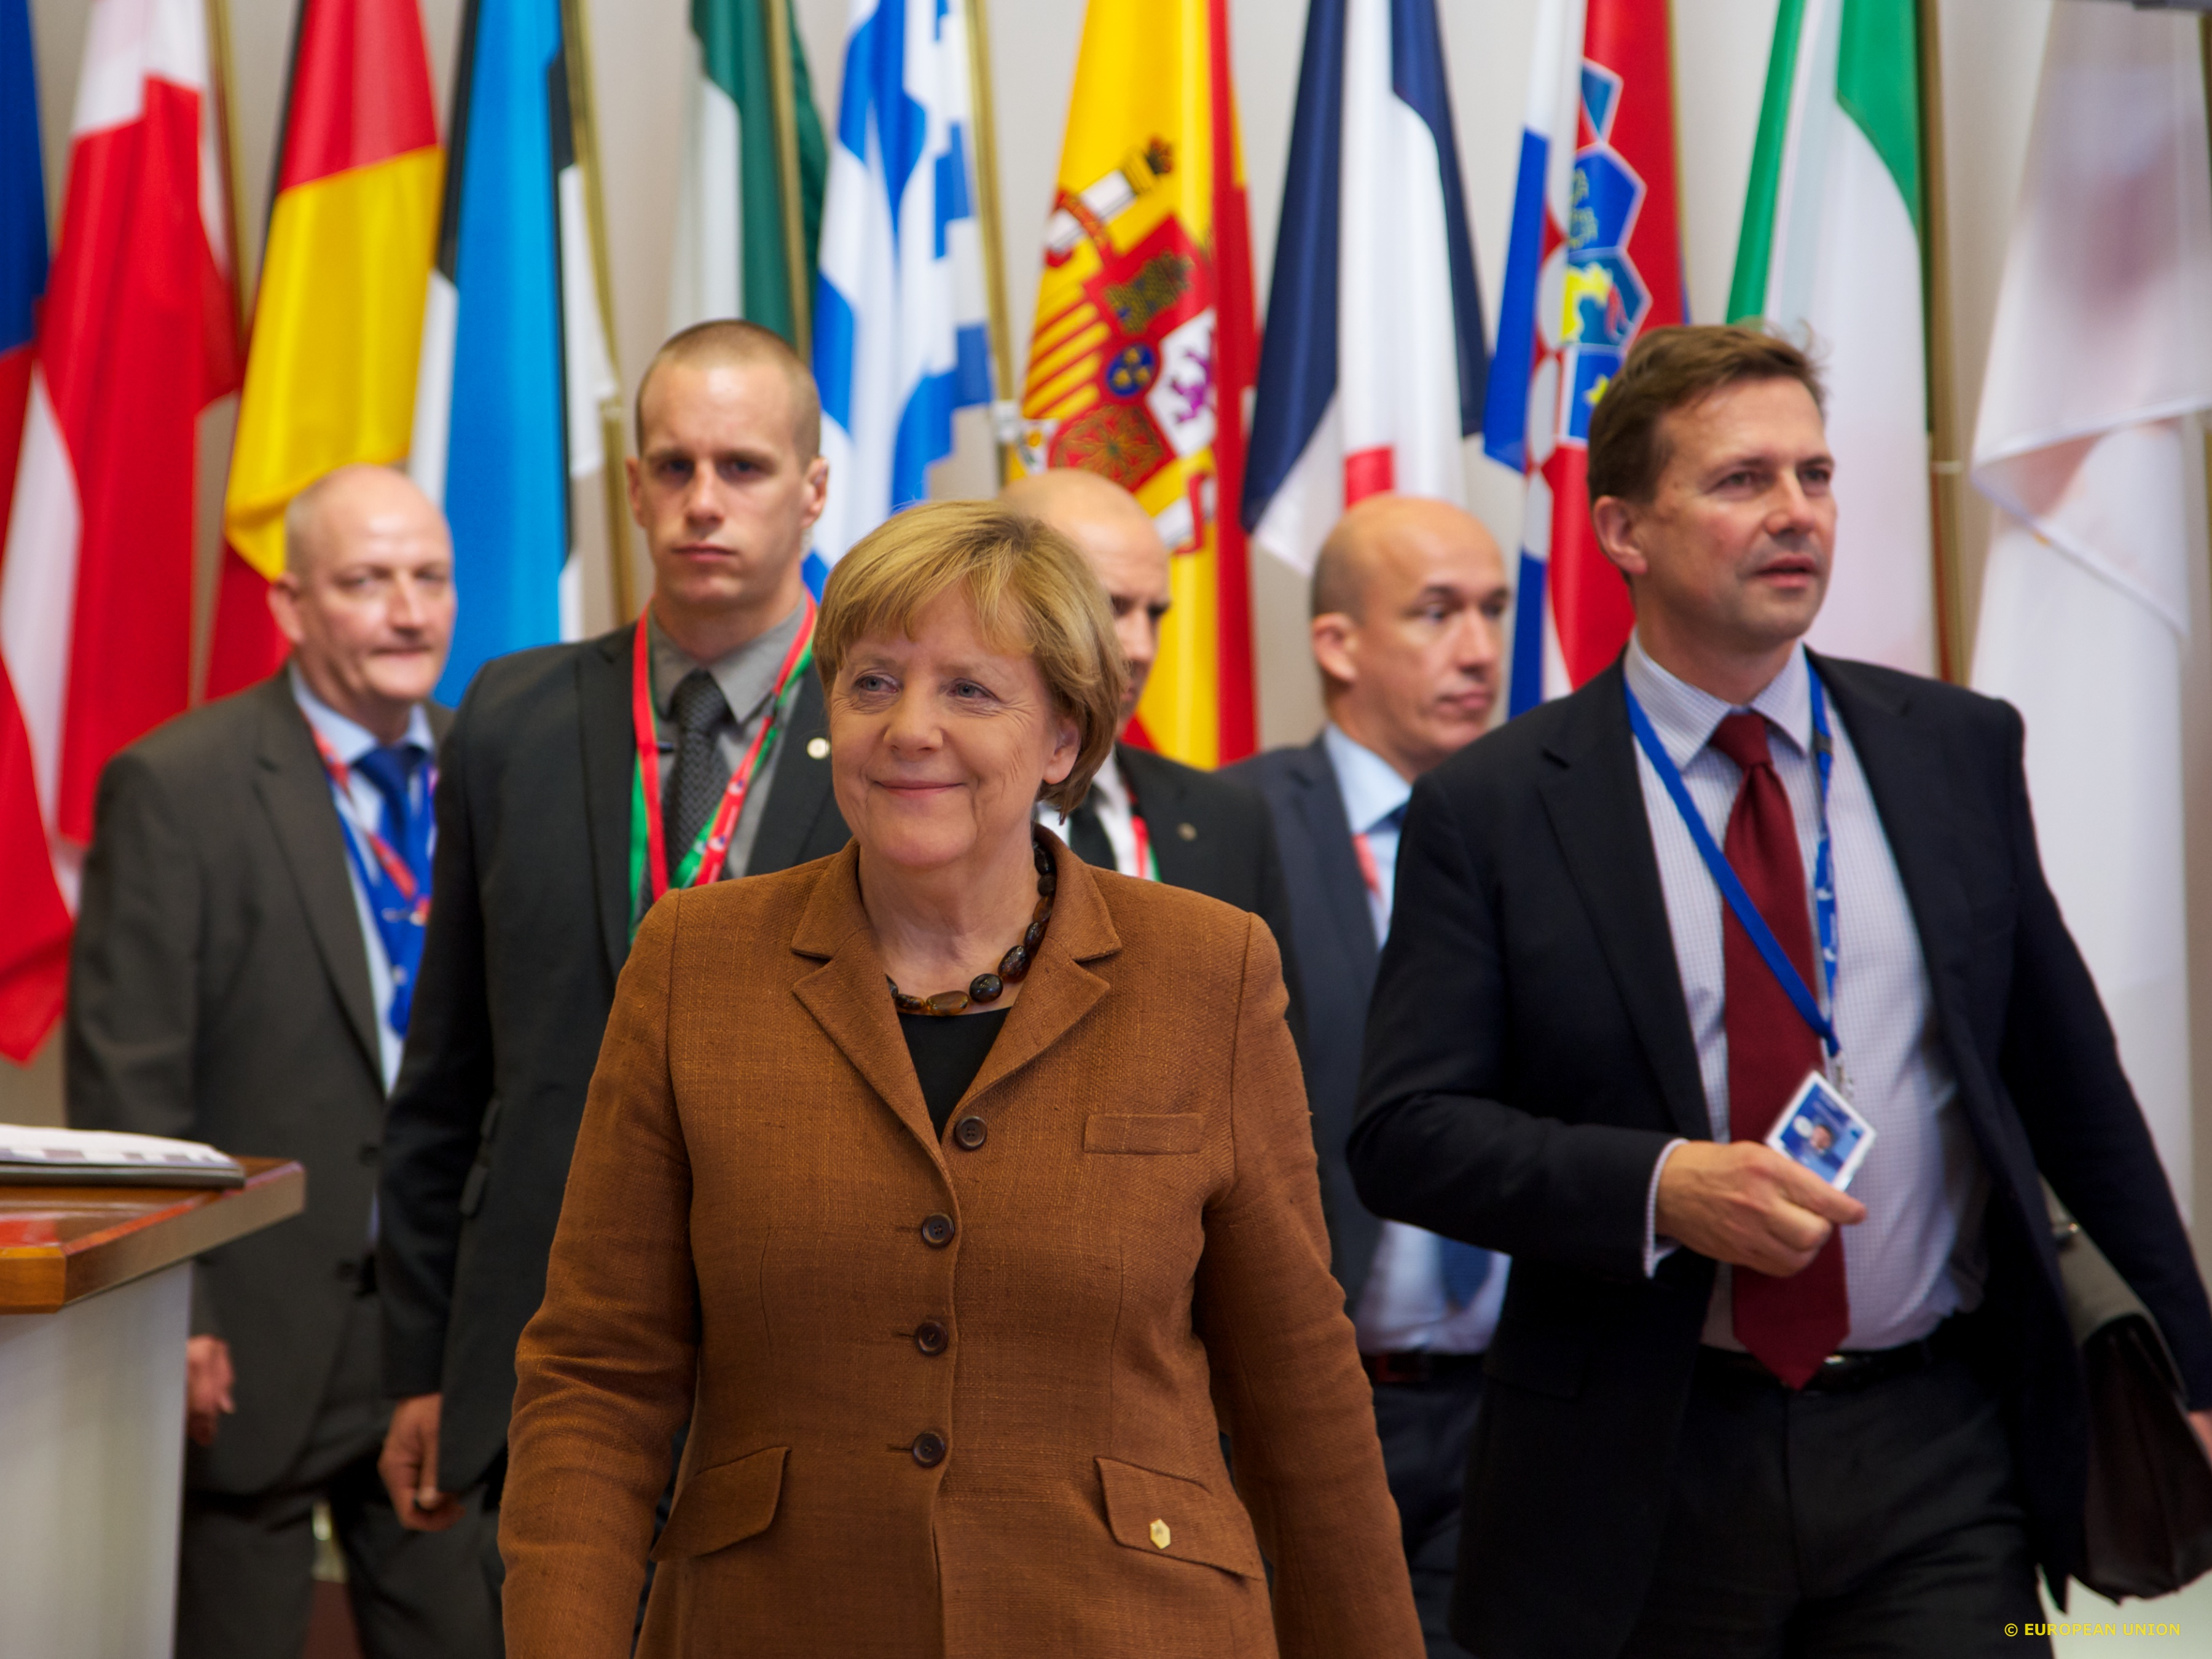 Angela Merkel is now rowing back from her initial open-armed reaction to the migrant crisis.